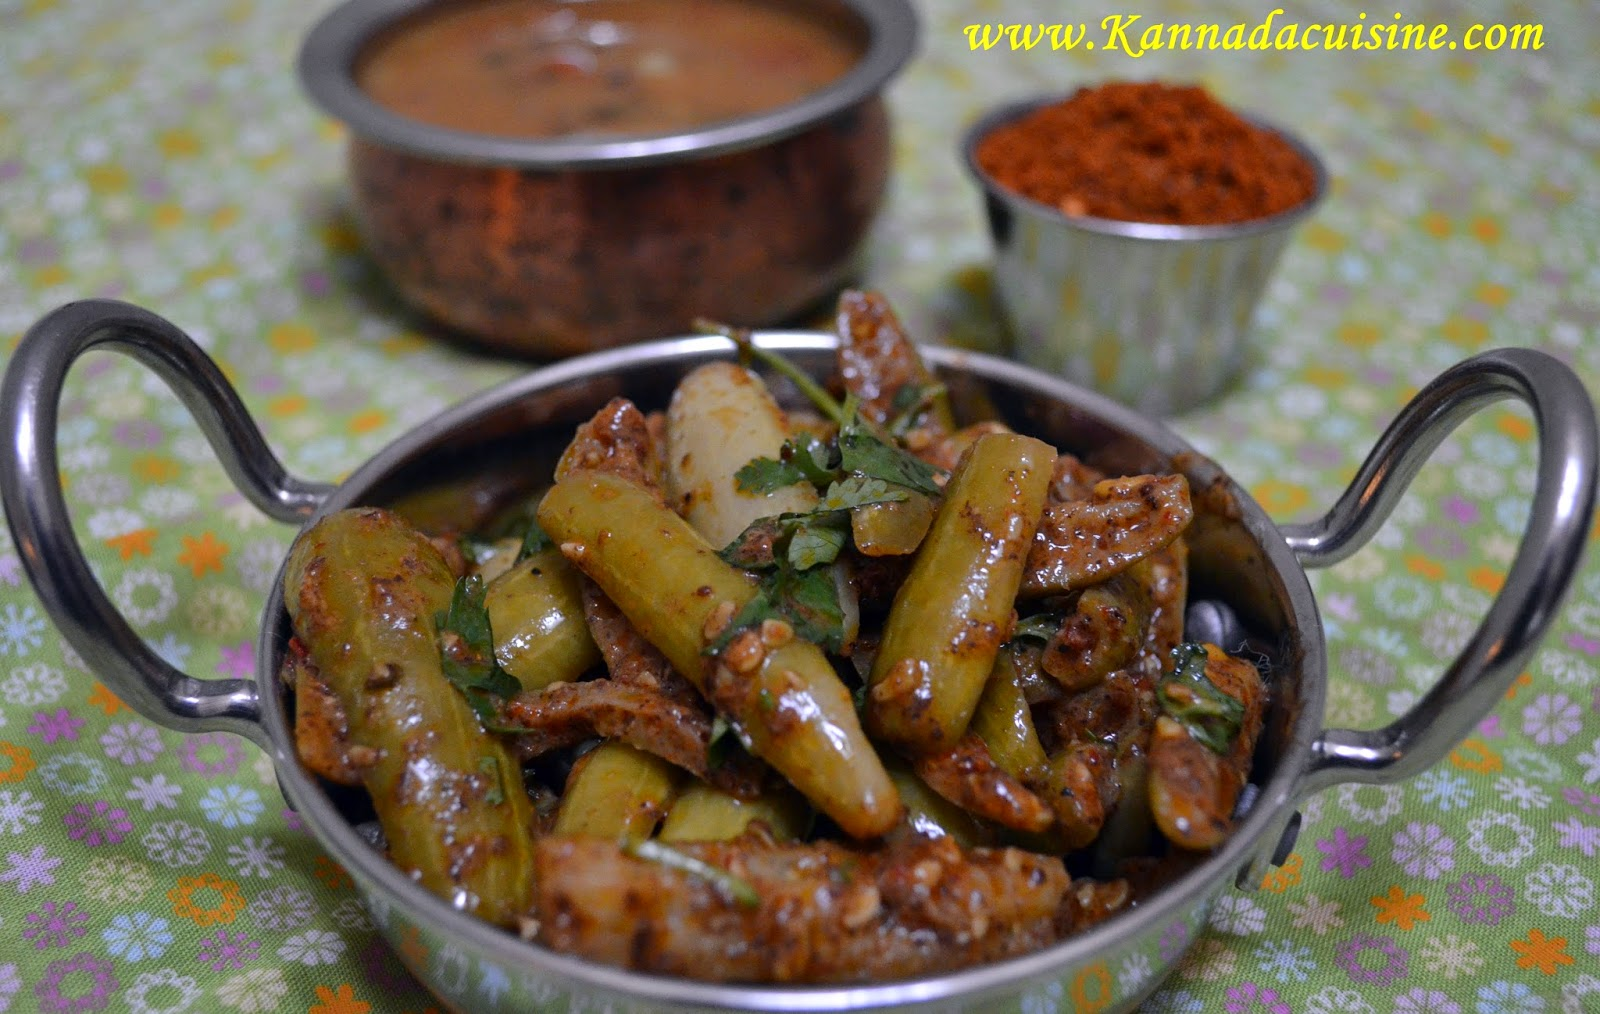 Kannada cuisine tondekayi flaxseeds fry this tondekayi fry turned out to be quite nice and i did not have to sell the idea of eating healthful food to honey the health benefits of flax seeds forumfinder Images